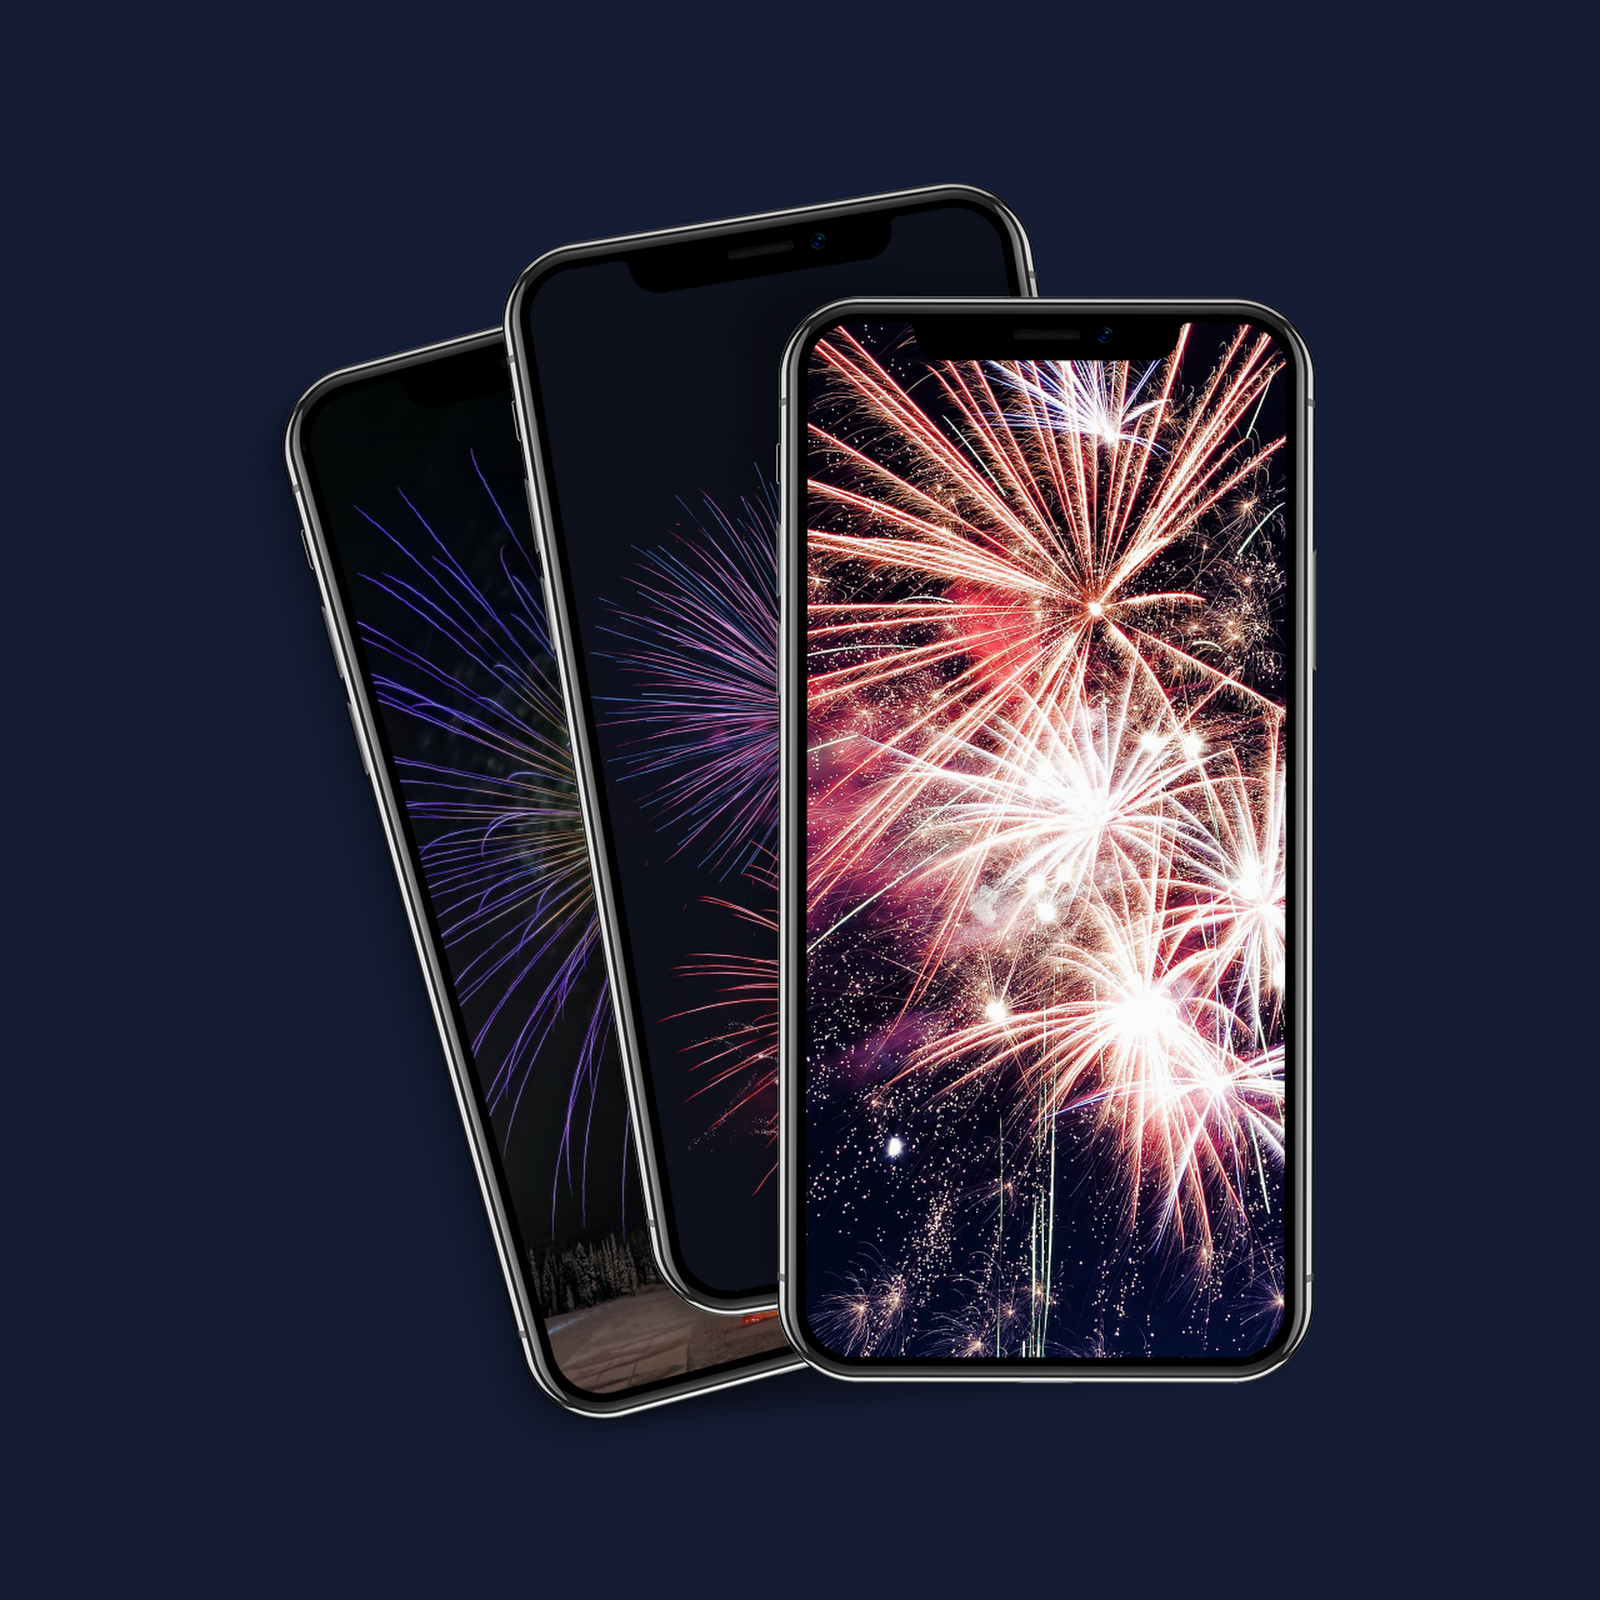 New Year's Eve iPhone wallpaper pack